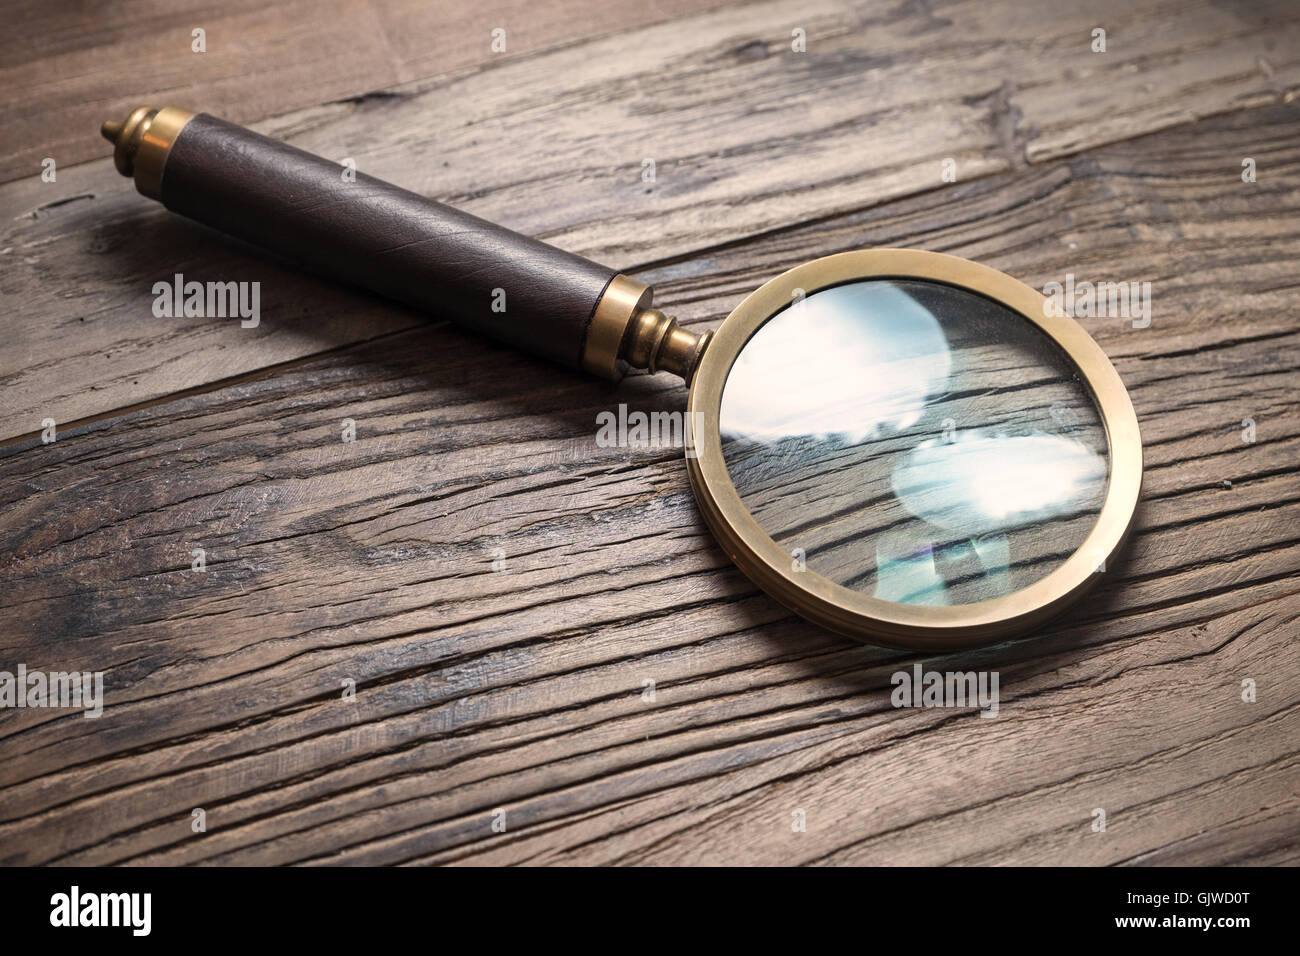 Retro style magnifying glass on a wooden tabe - Stock Image